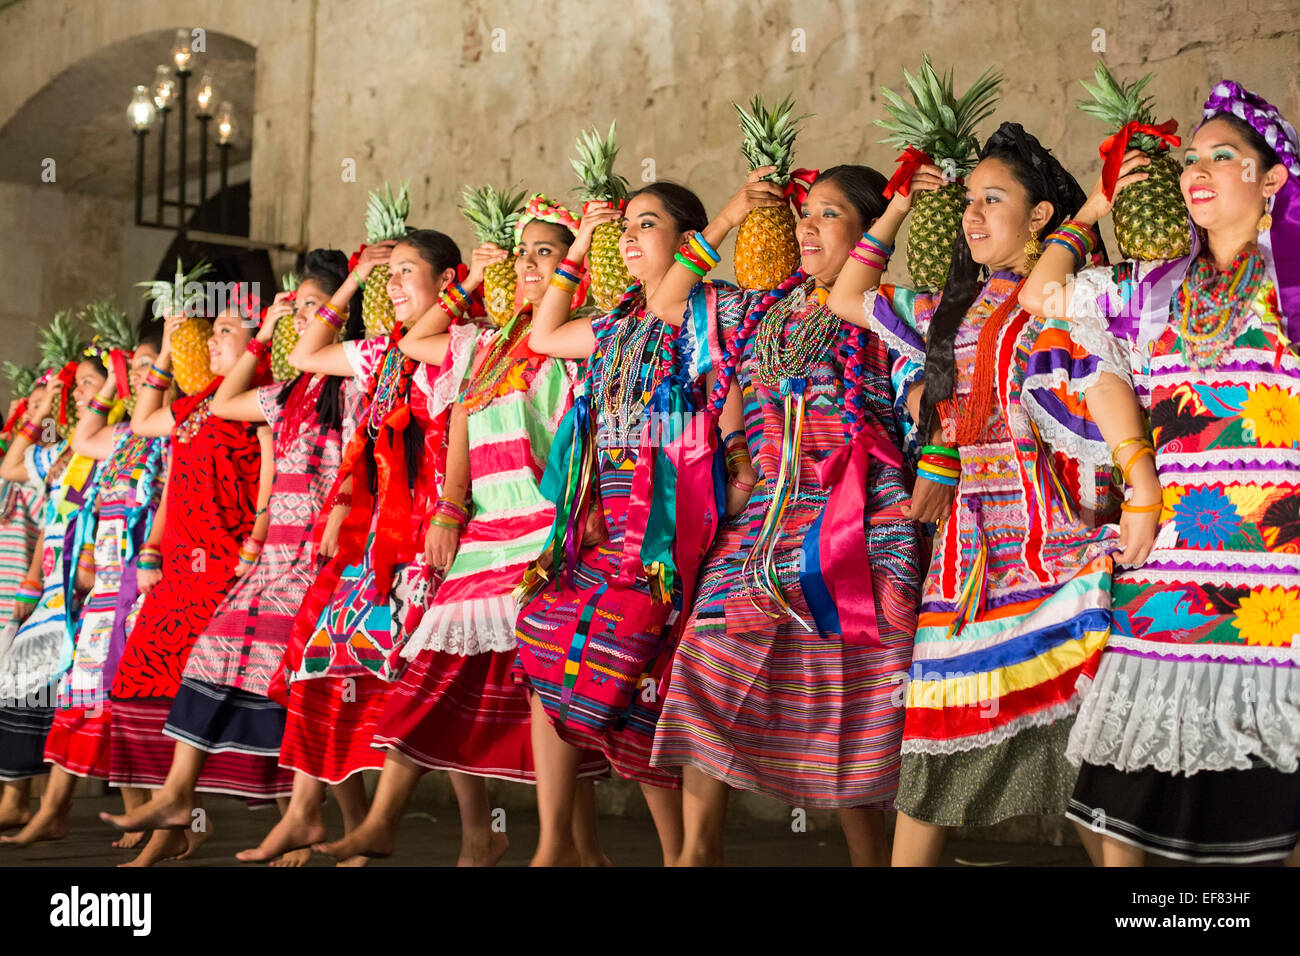 Oaxaca, Mexico - A folk dance group performs dances from eight regions of Oaxaca in the Guelaguetza Folk Dance dinner - Stock Image